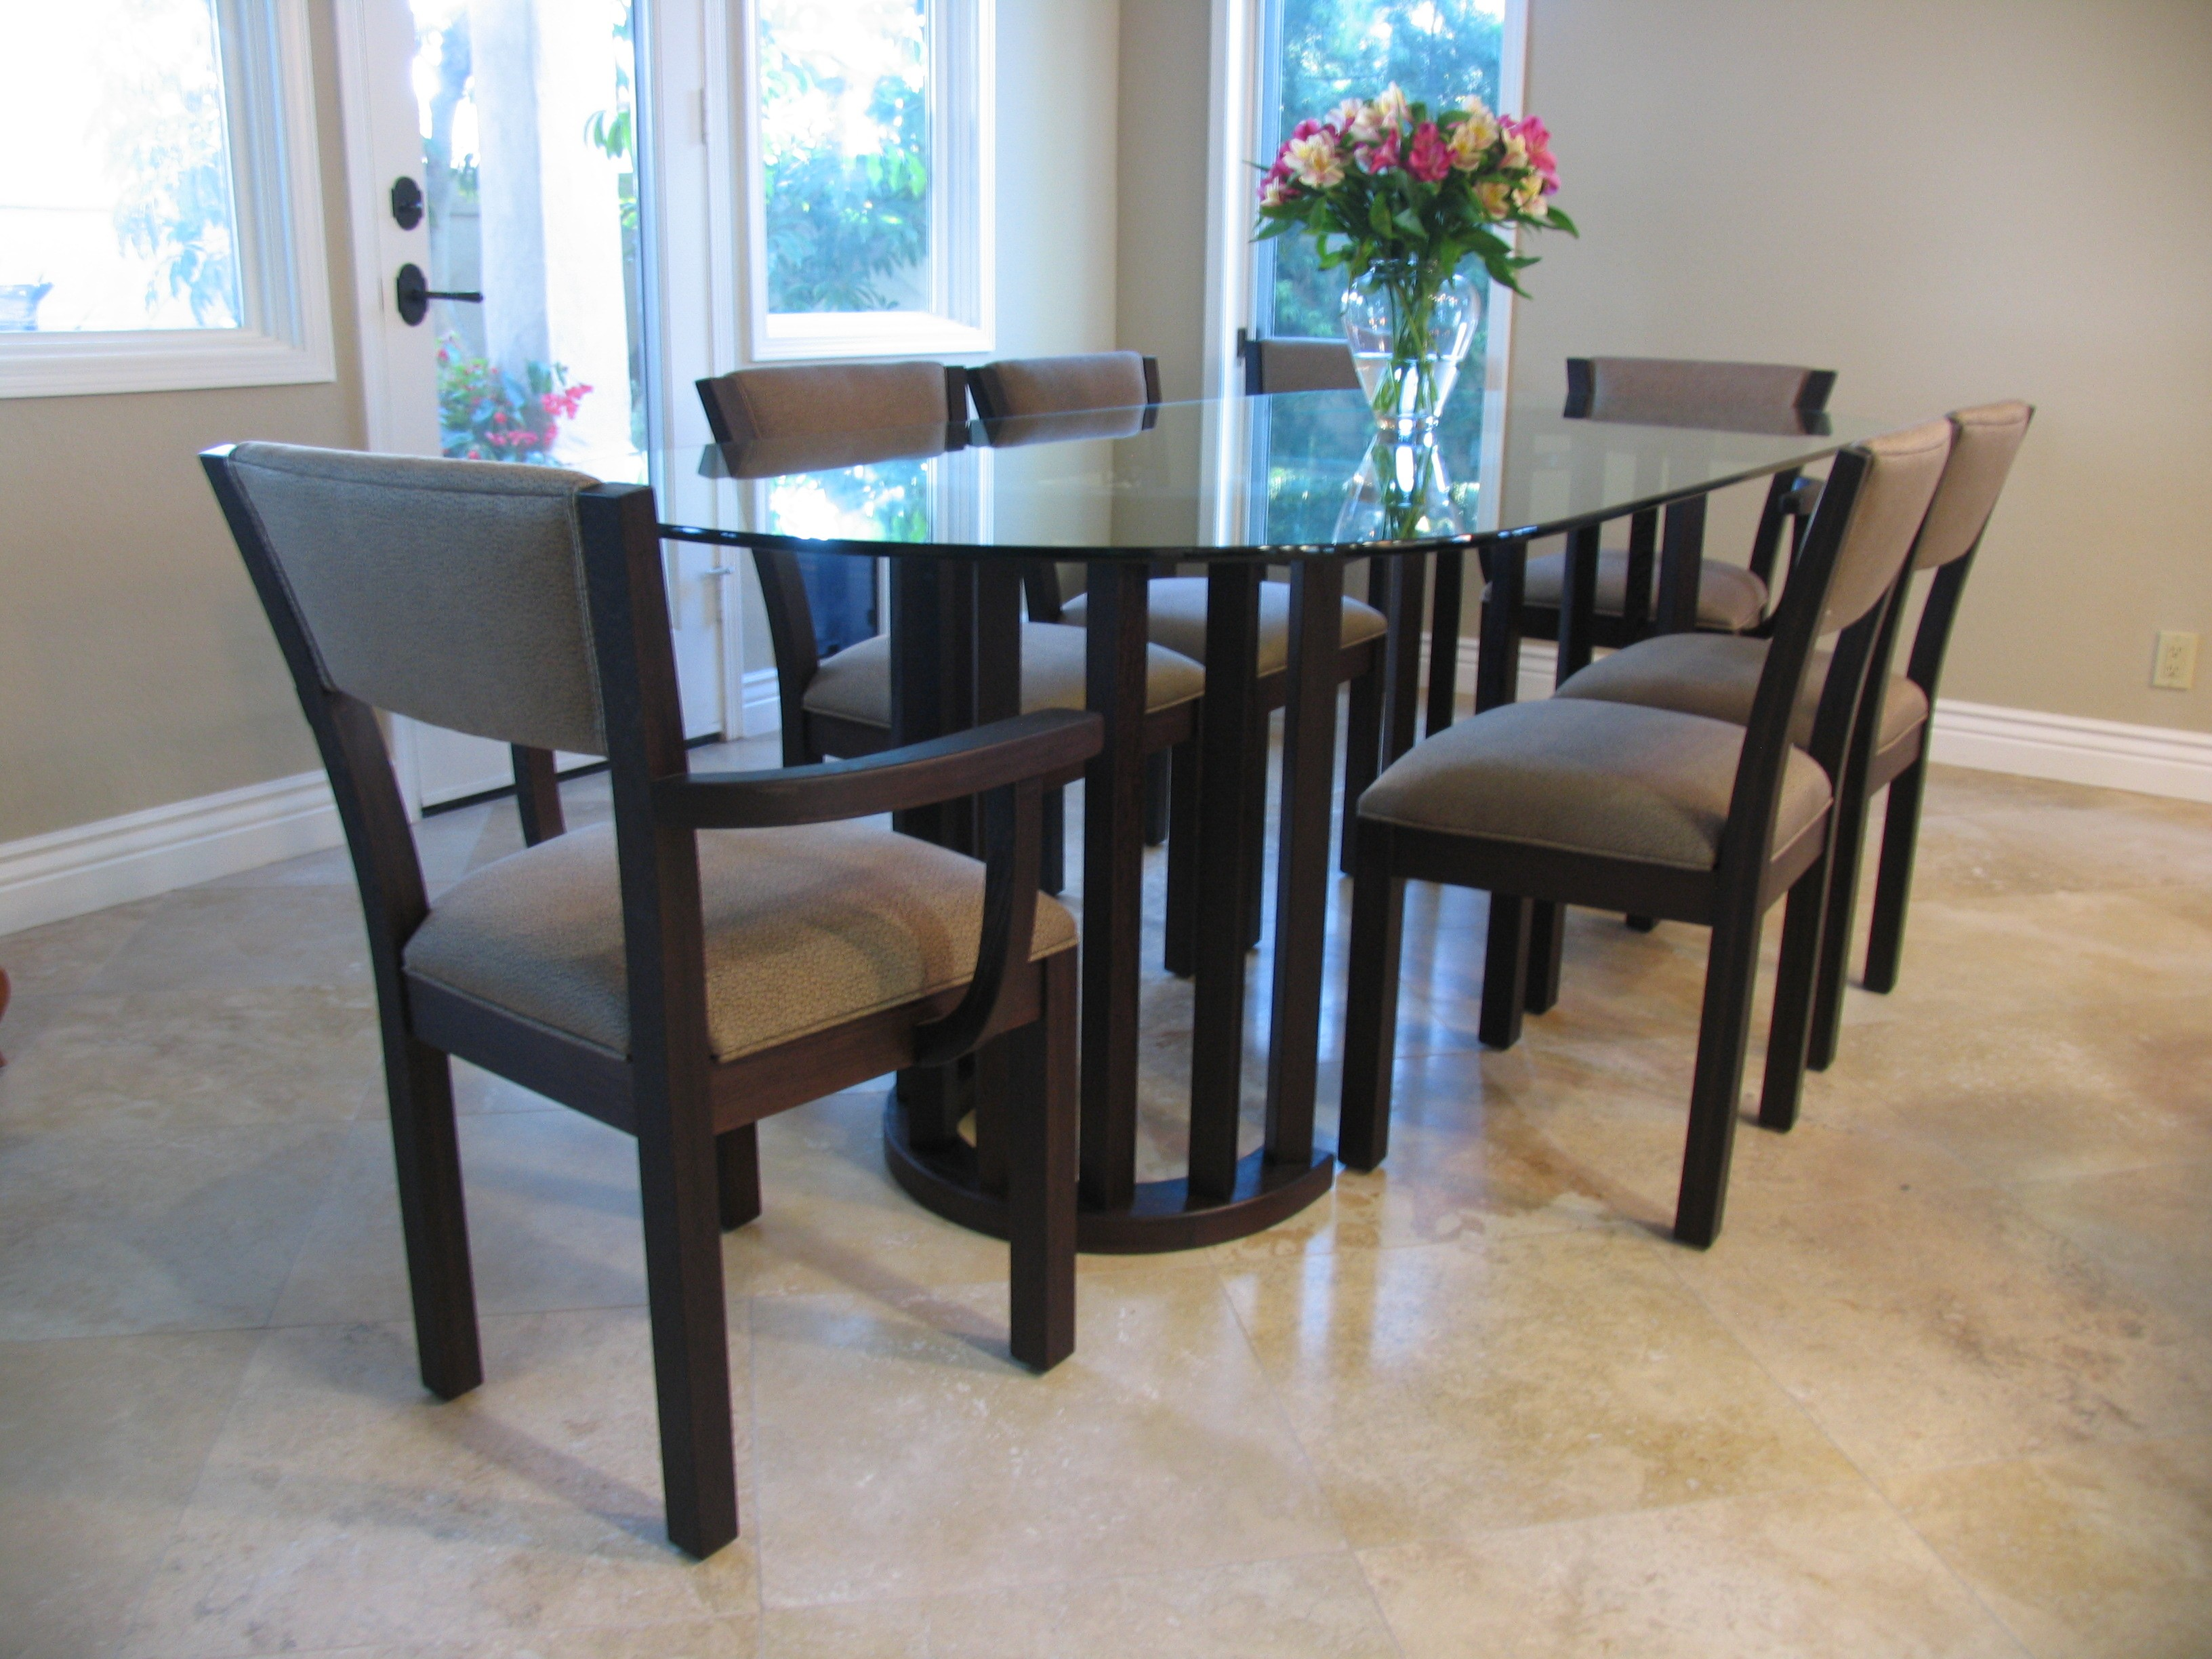 Walnut dining table & chairs (wenge + glass)